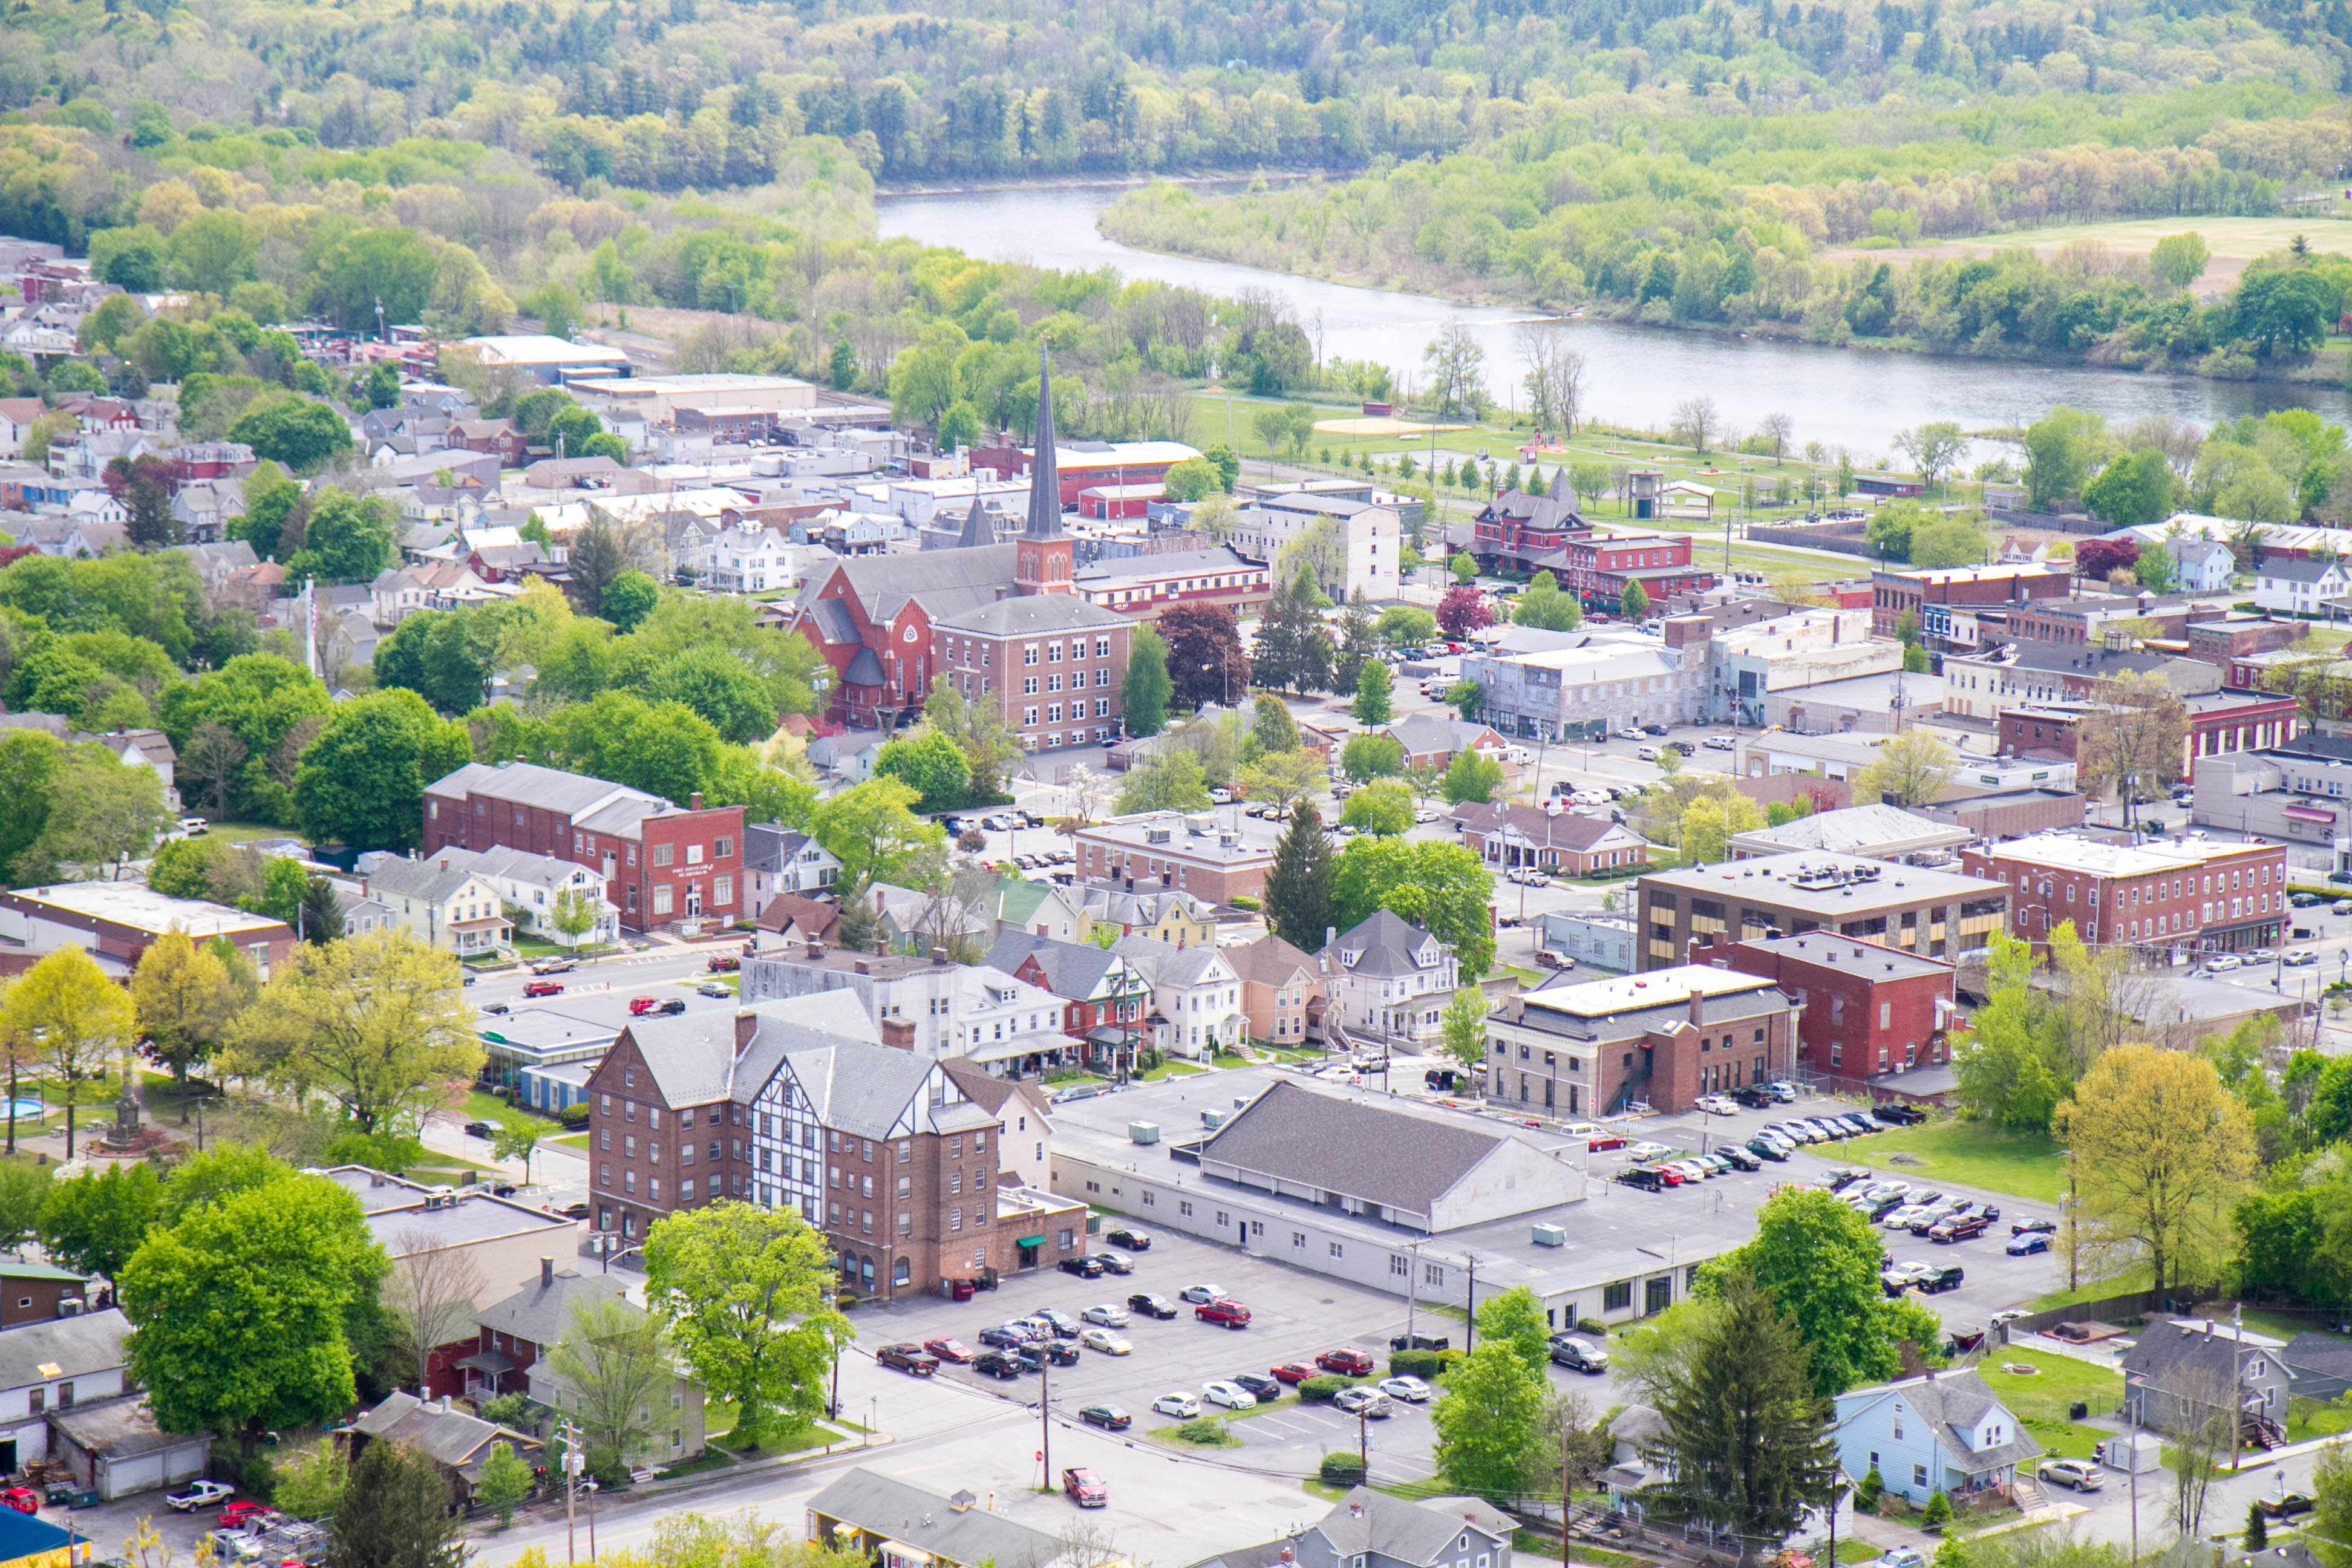 Port Jervis Among Municipalities Highlighted for Low Funds and Deficits